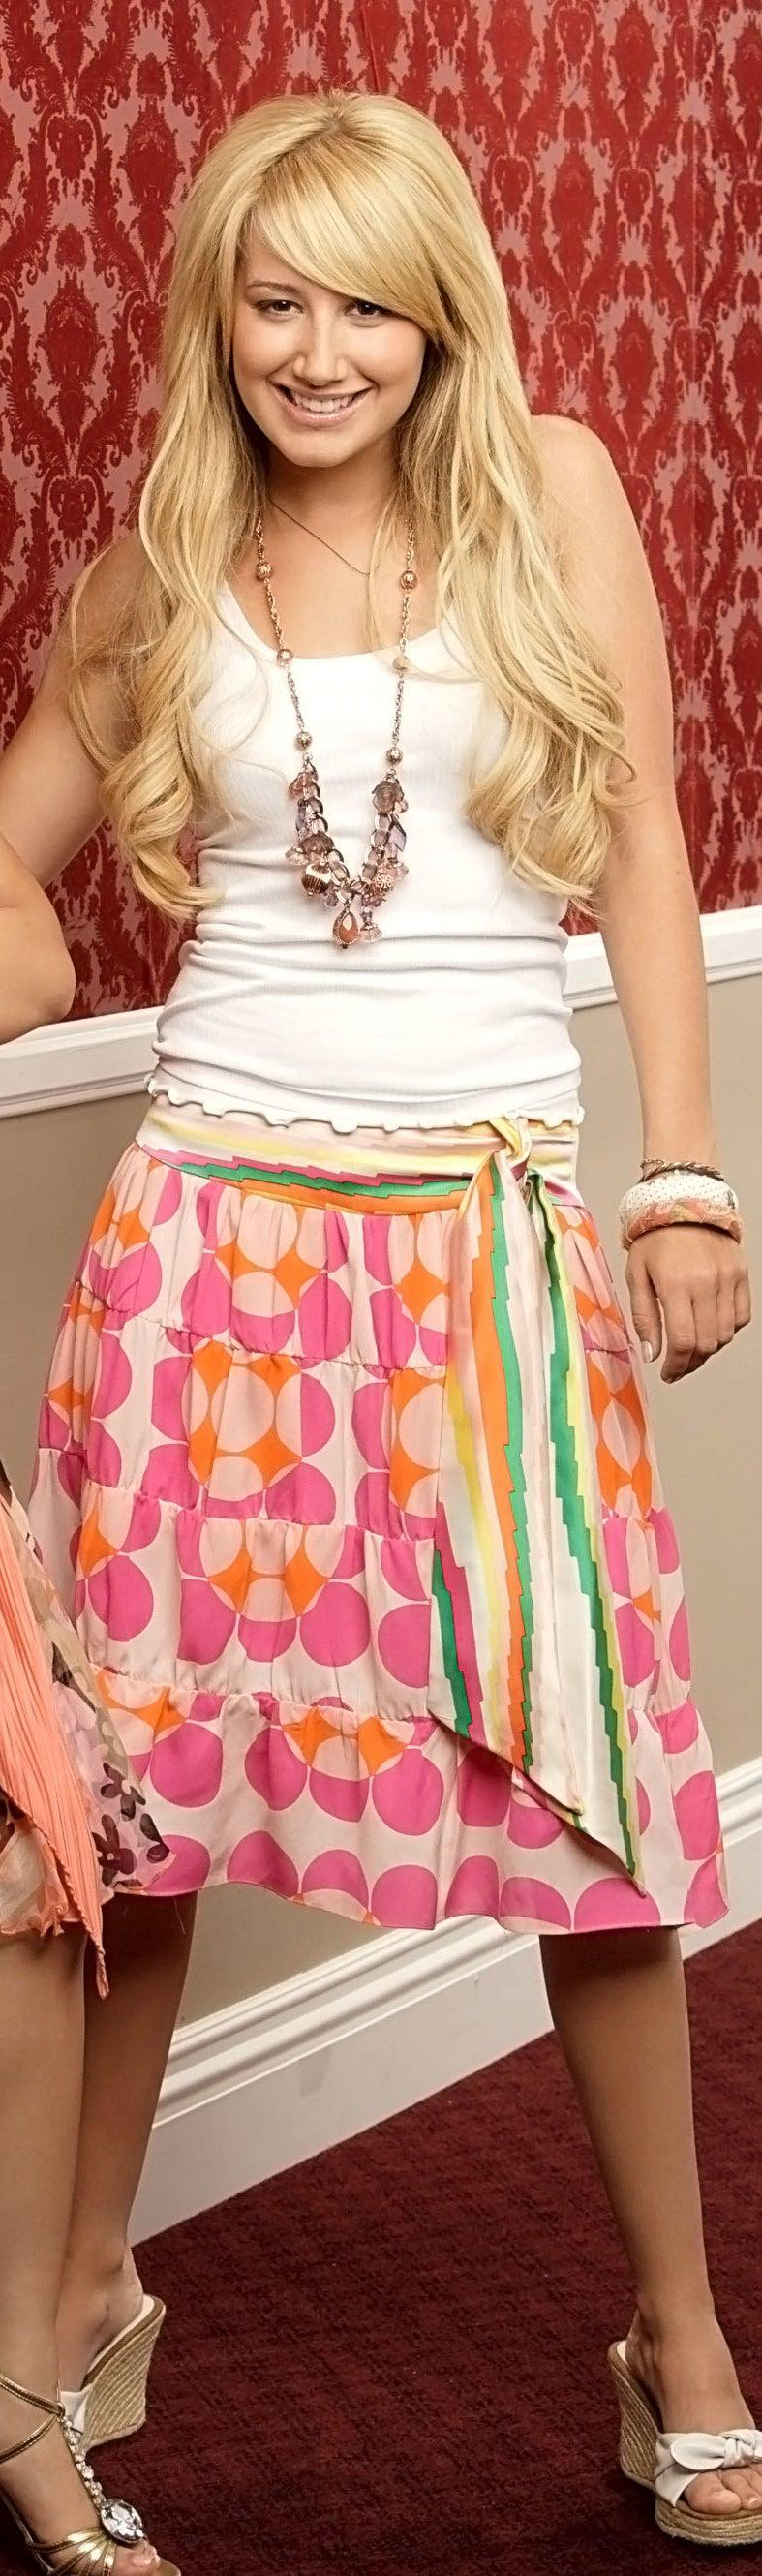 Maddie with a long past-the-knees large polka dot skirt with a sash at the waist with a tank top and long necklace with wedges